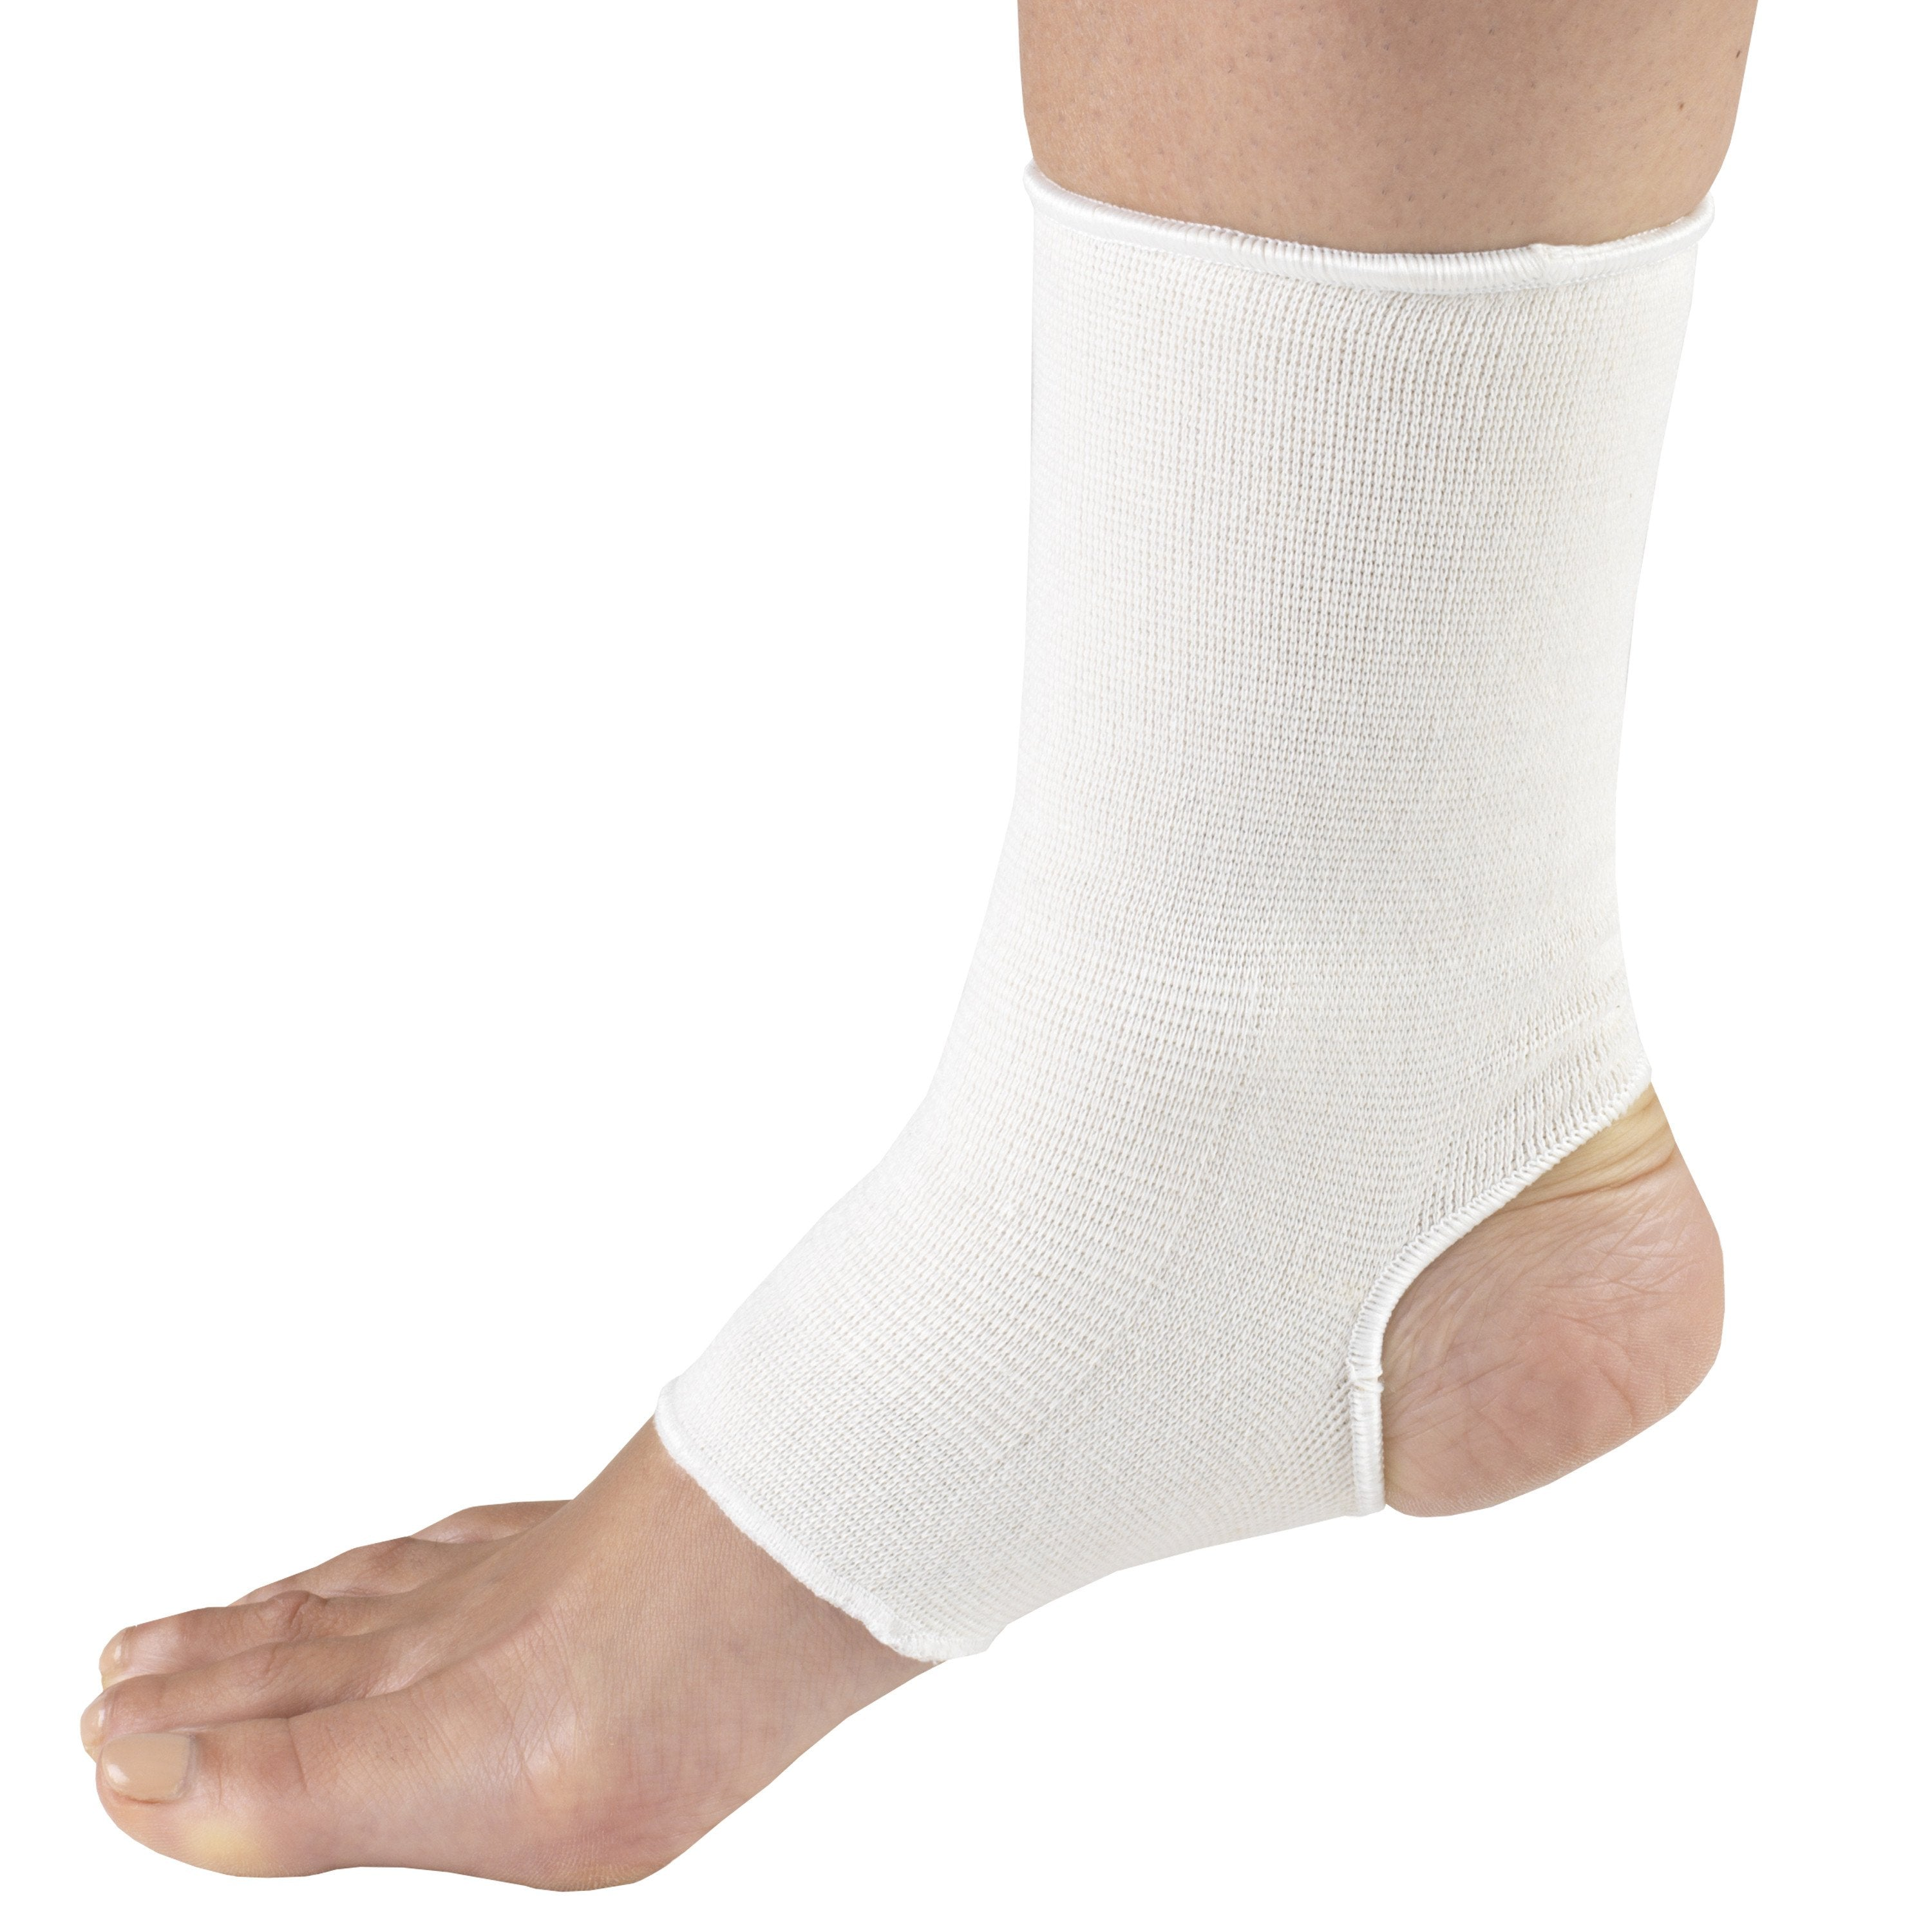 OTC ANKLE SUPPORT PULLOVER  - 2417 - White / XL